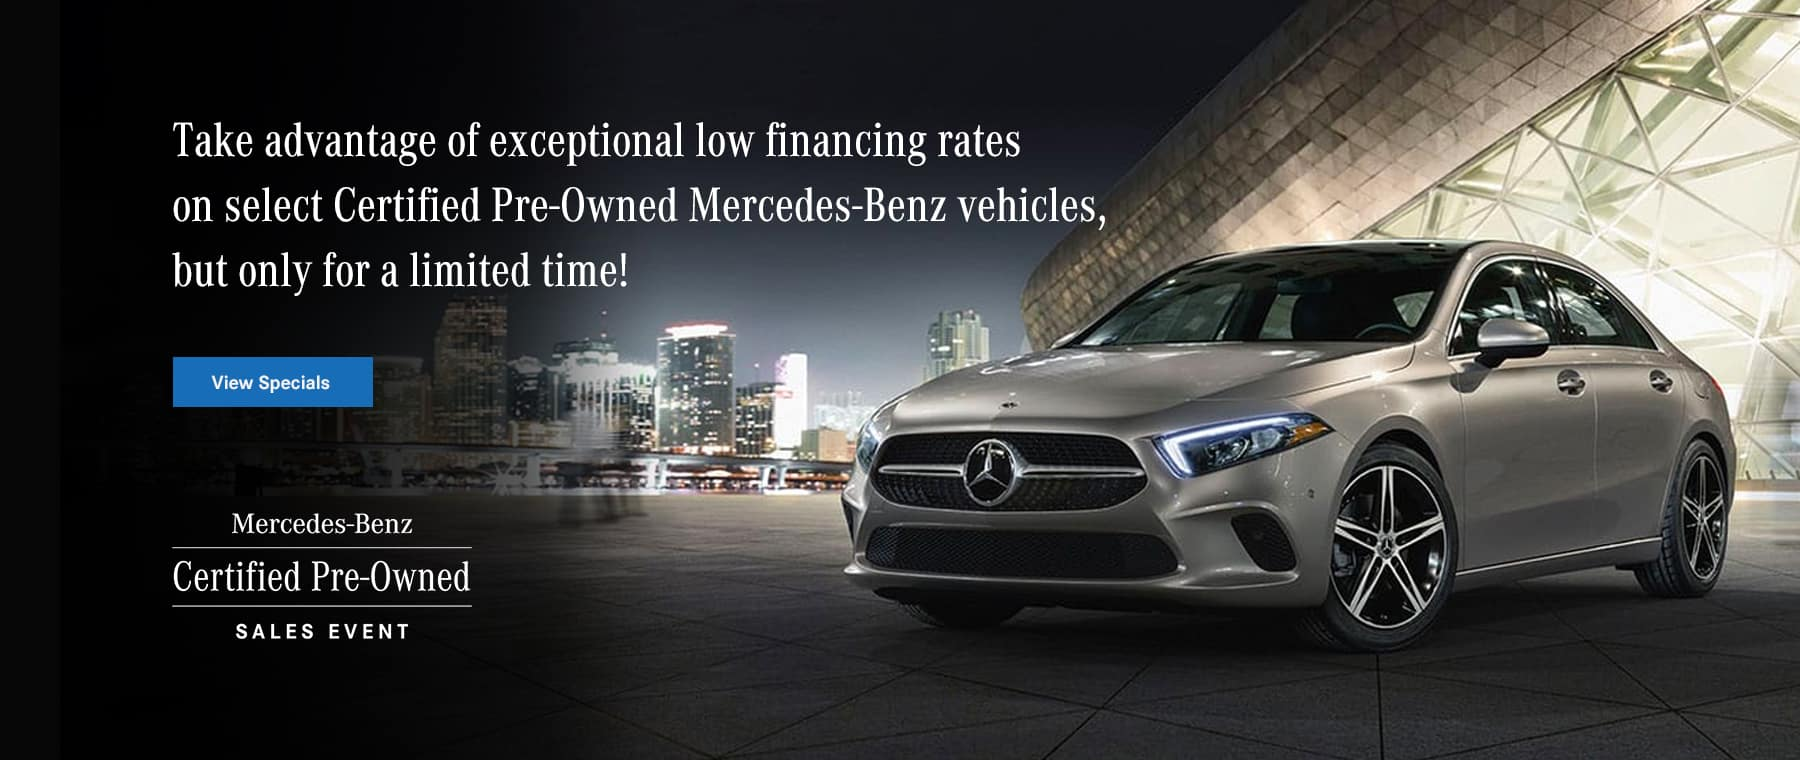 Mauro Motors Bmw Mercedes Benz Dealer In North Haven Ct >> Mercedes Benz Of Fairfield New Used Ct Luxury Auto Dealership